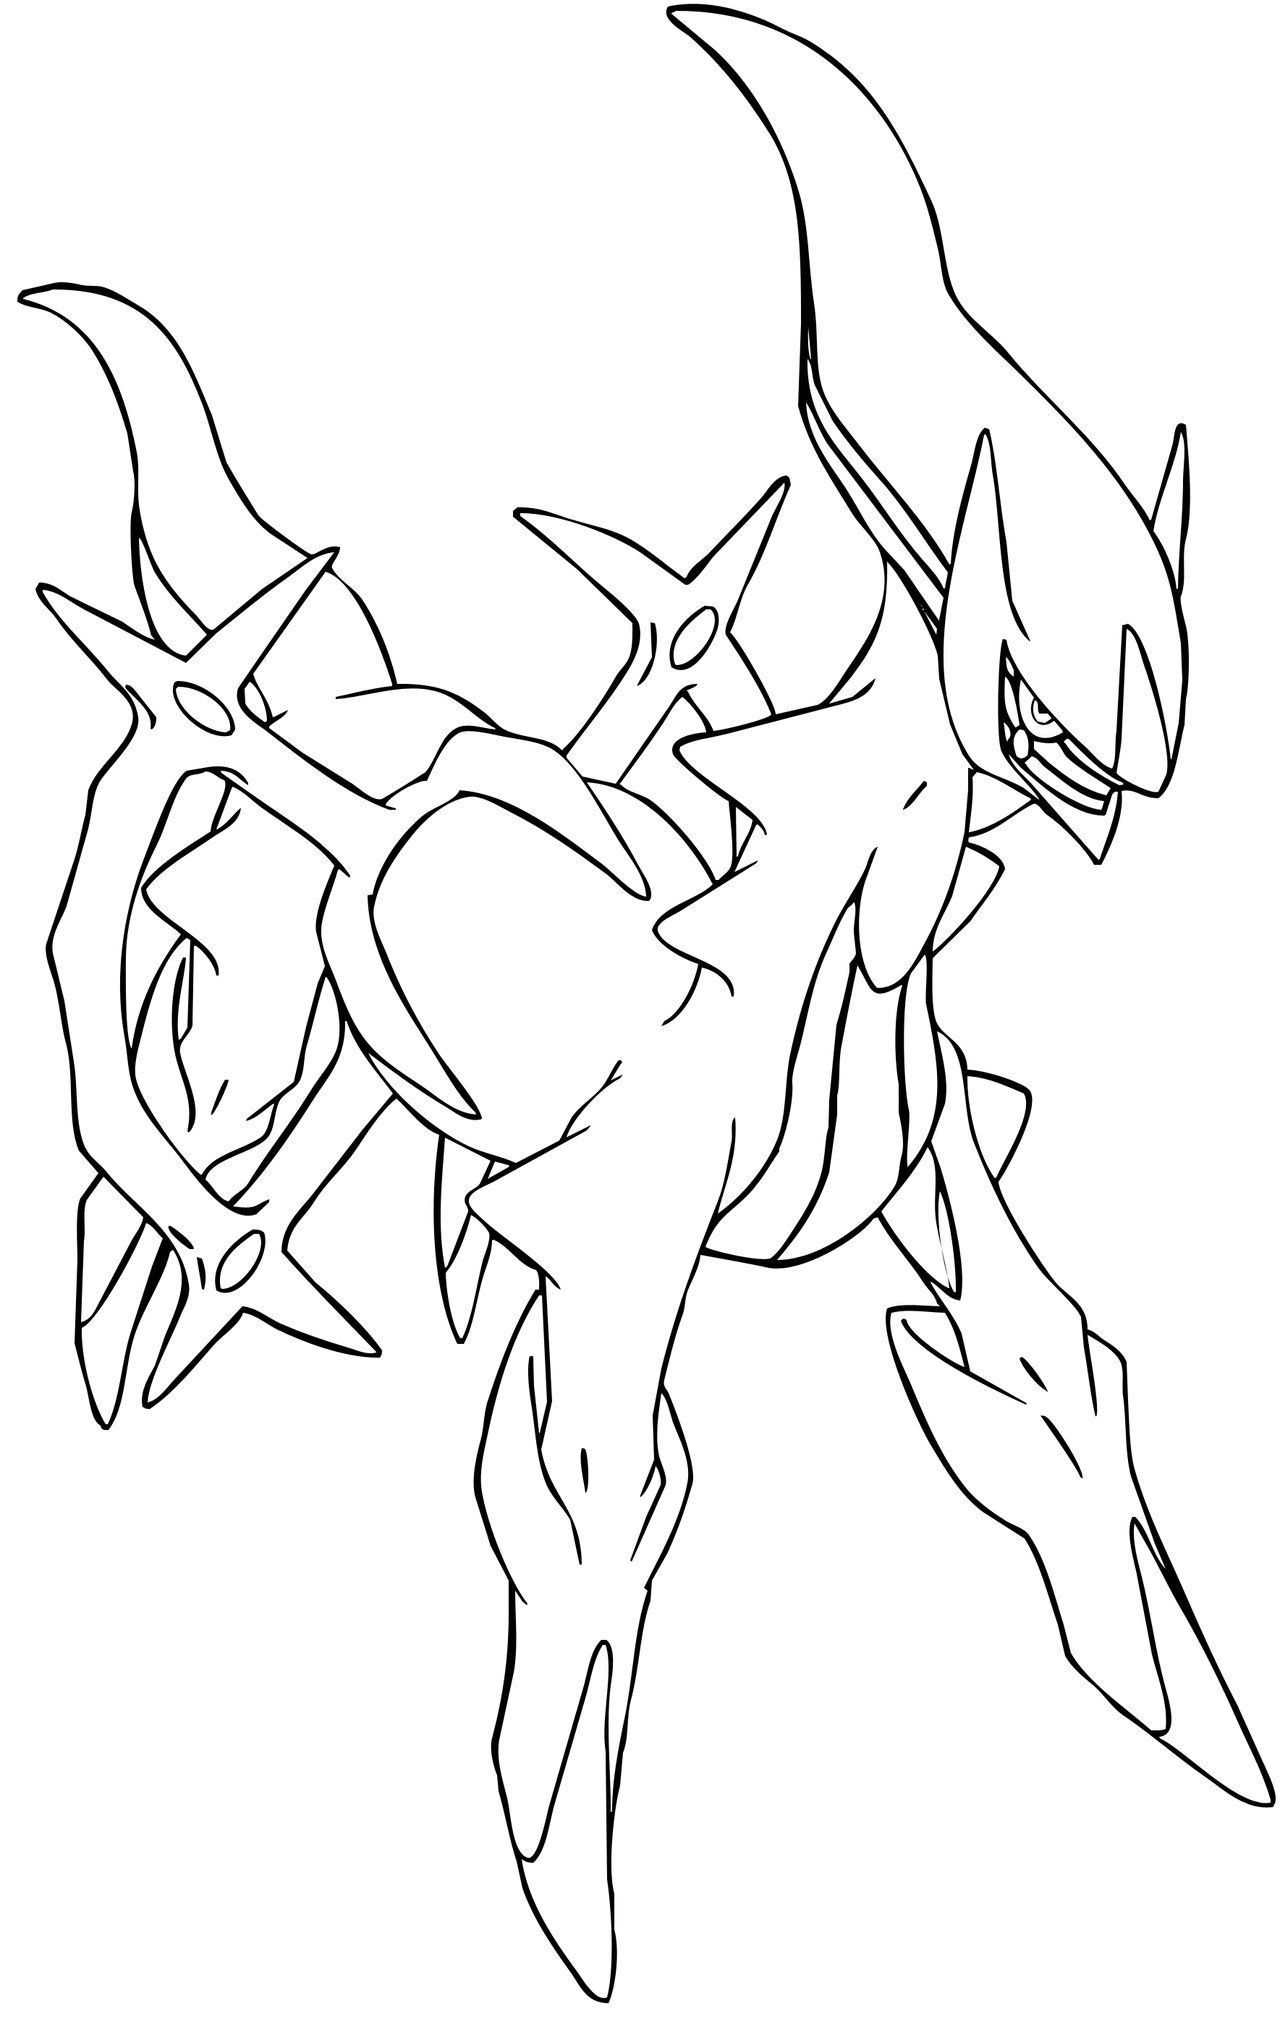 Arceus Pokemon Coloring Page Youngandtae Com Pokemon Coloring Pokemon Coloring Pages Pokemon Drawings